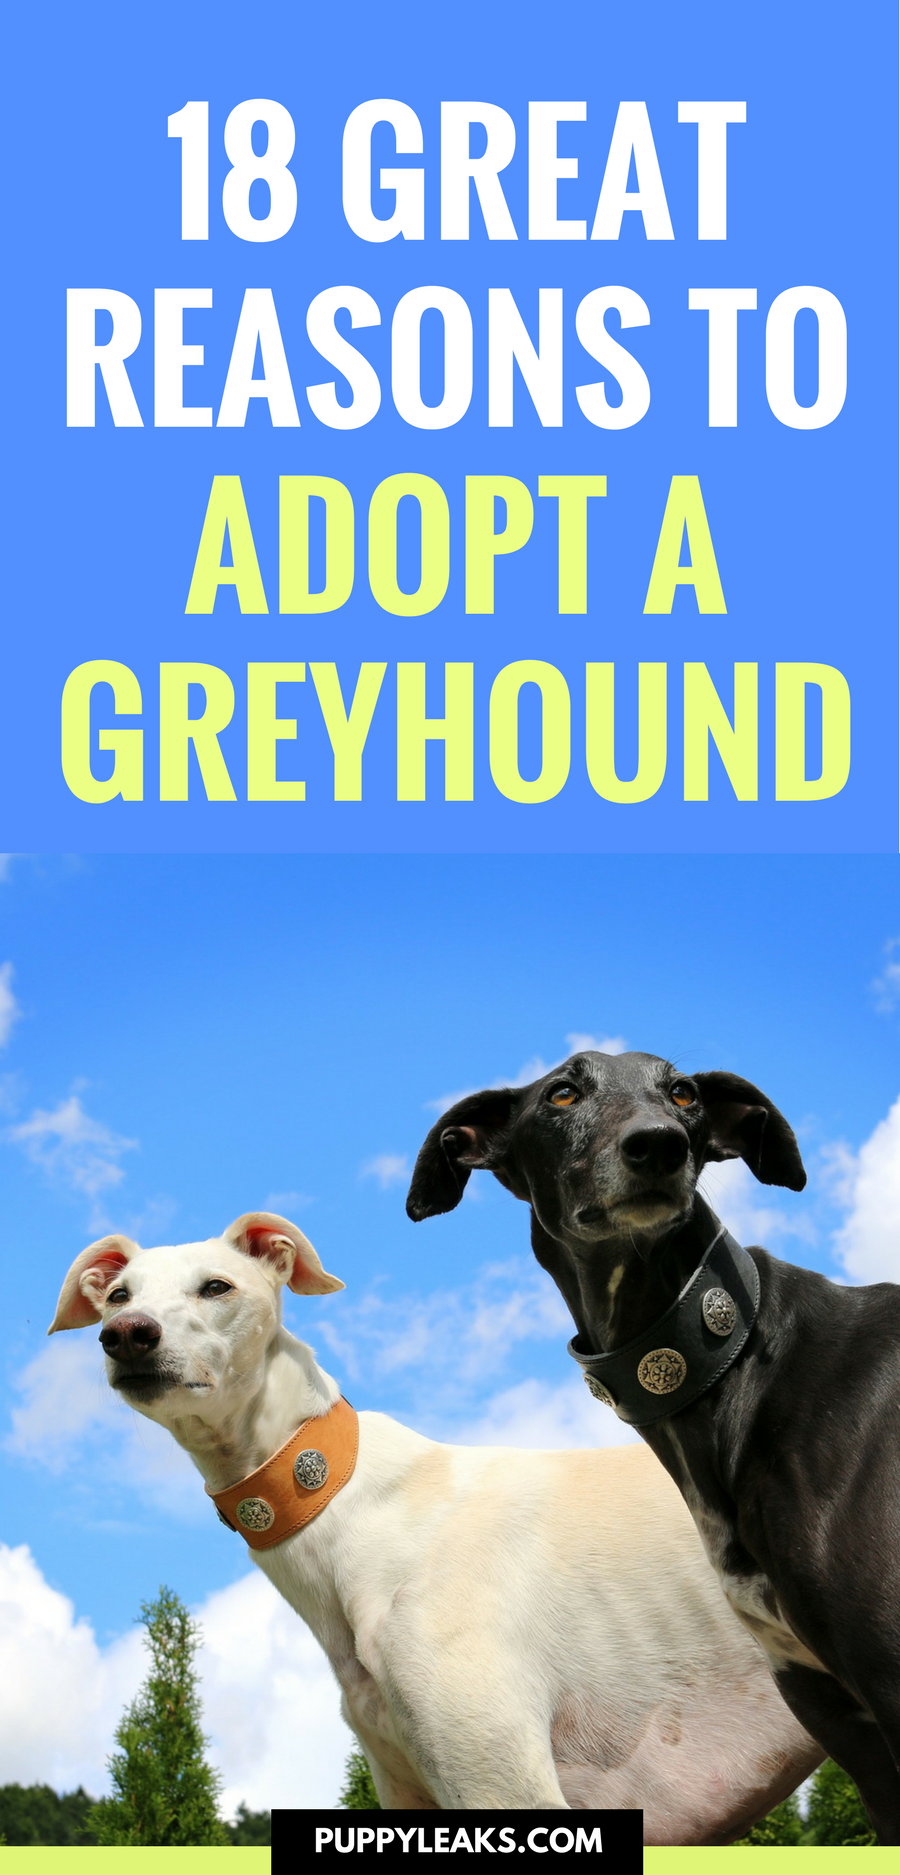 Looking for a laid back dog breed? Want a dog that's perfect for apartments? A Greyhound might be the right dog for you. Here's 18 excellent reasons to adopt a Greyhound. #dogs #dogadoption #dogrescue